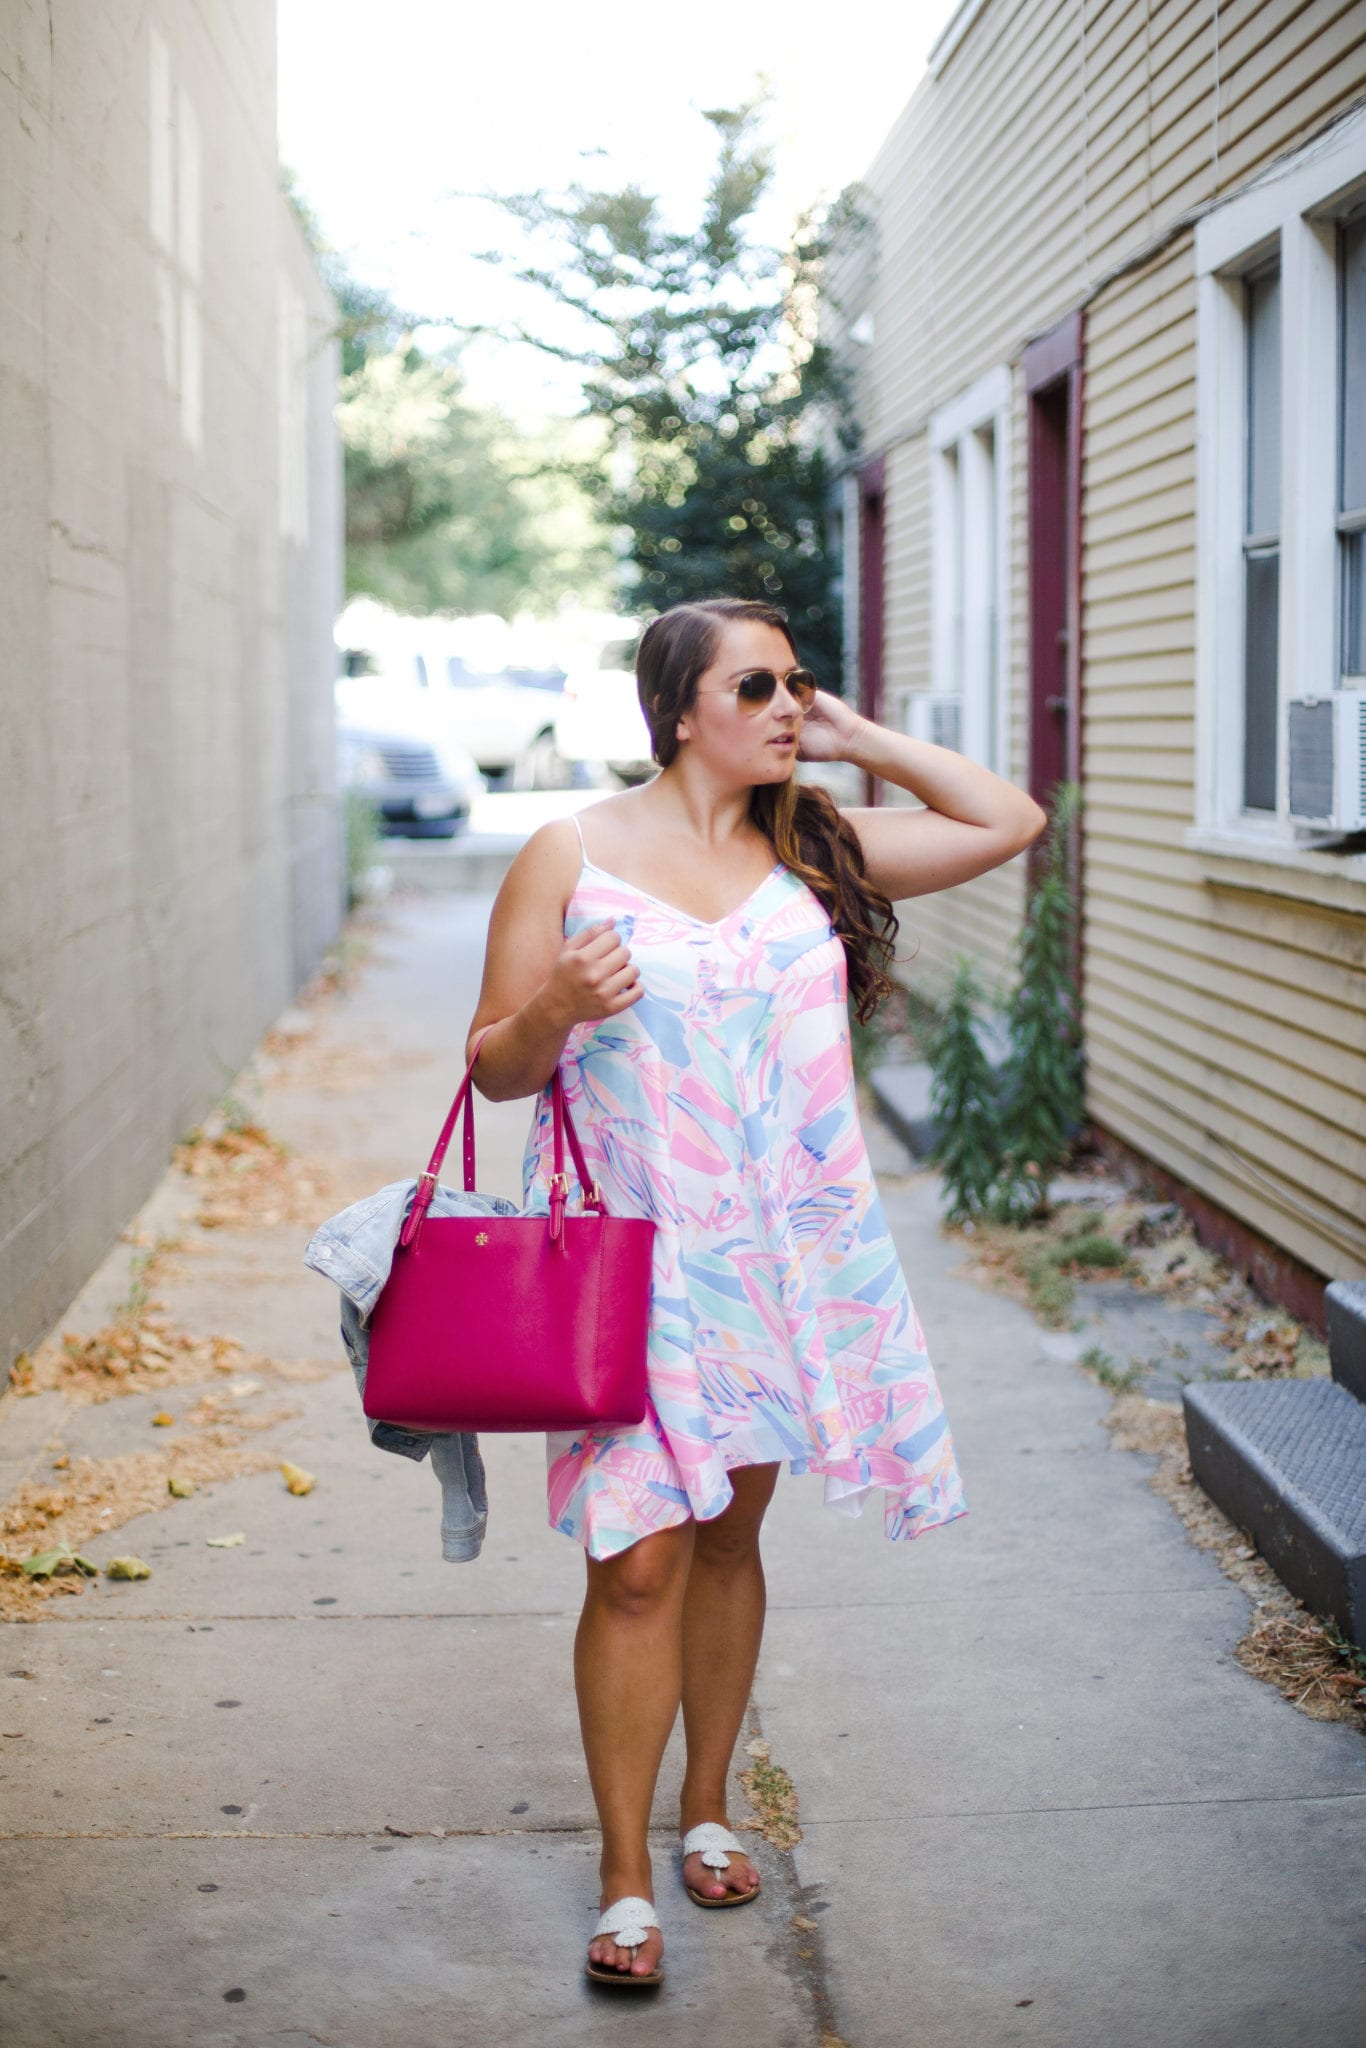 View More: http://melindahumphriesphotography.pass.us/clarissa-iraci    Out To Sea Lilly Pulitzer Dress styled by popular San Diego fashion blogger, The Brunette & The Beach